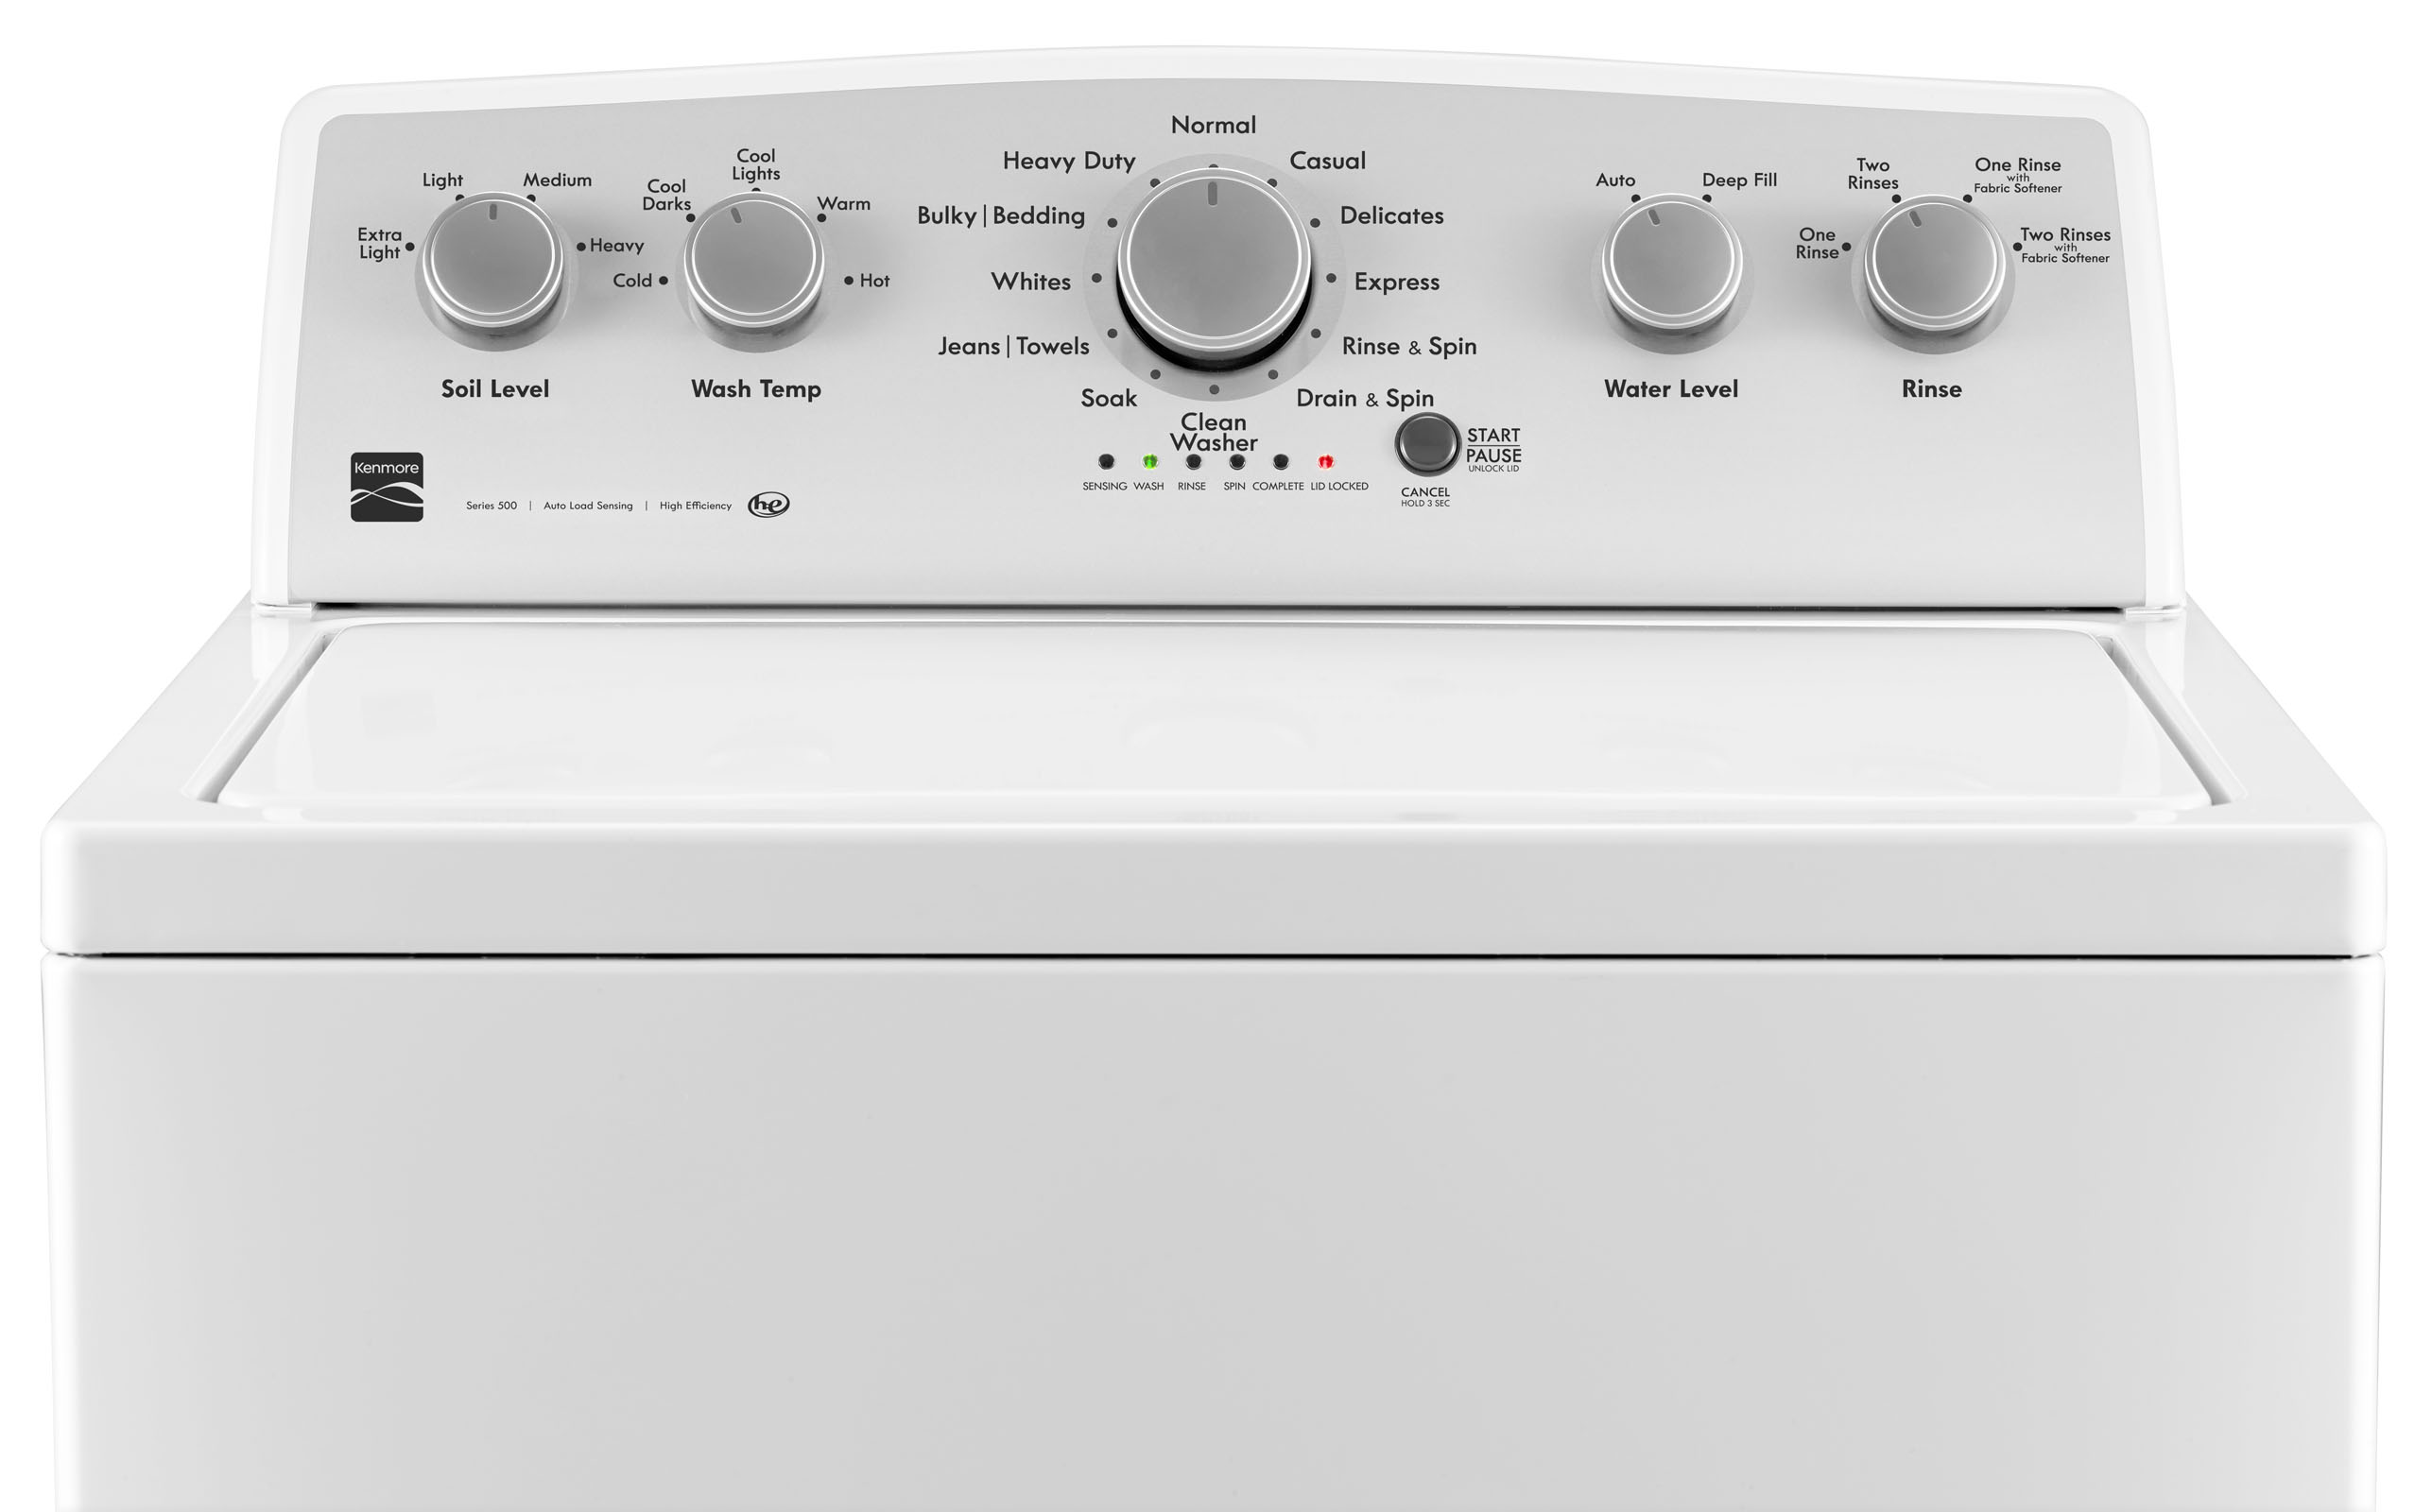 Kenmore 22352 4.2 cu. ft. Top-Load Washer w/ Deep Fill – White